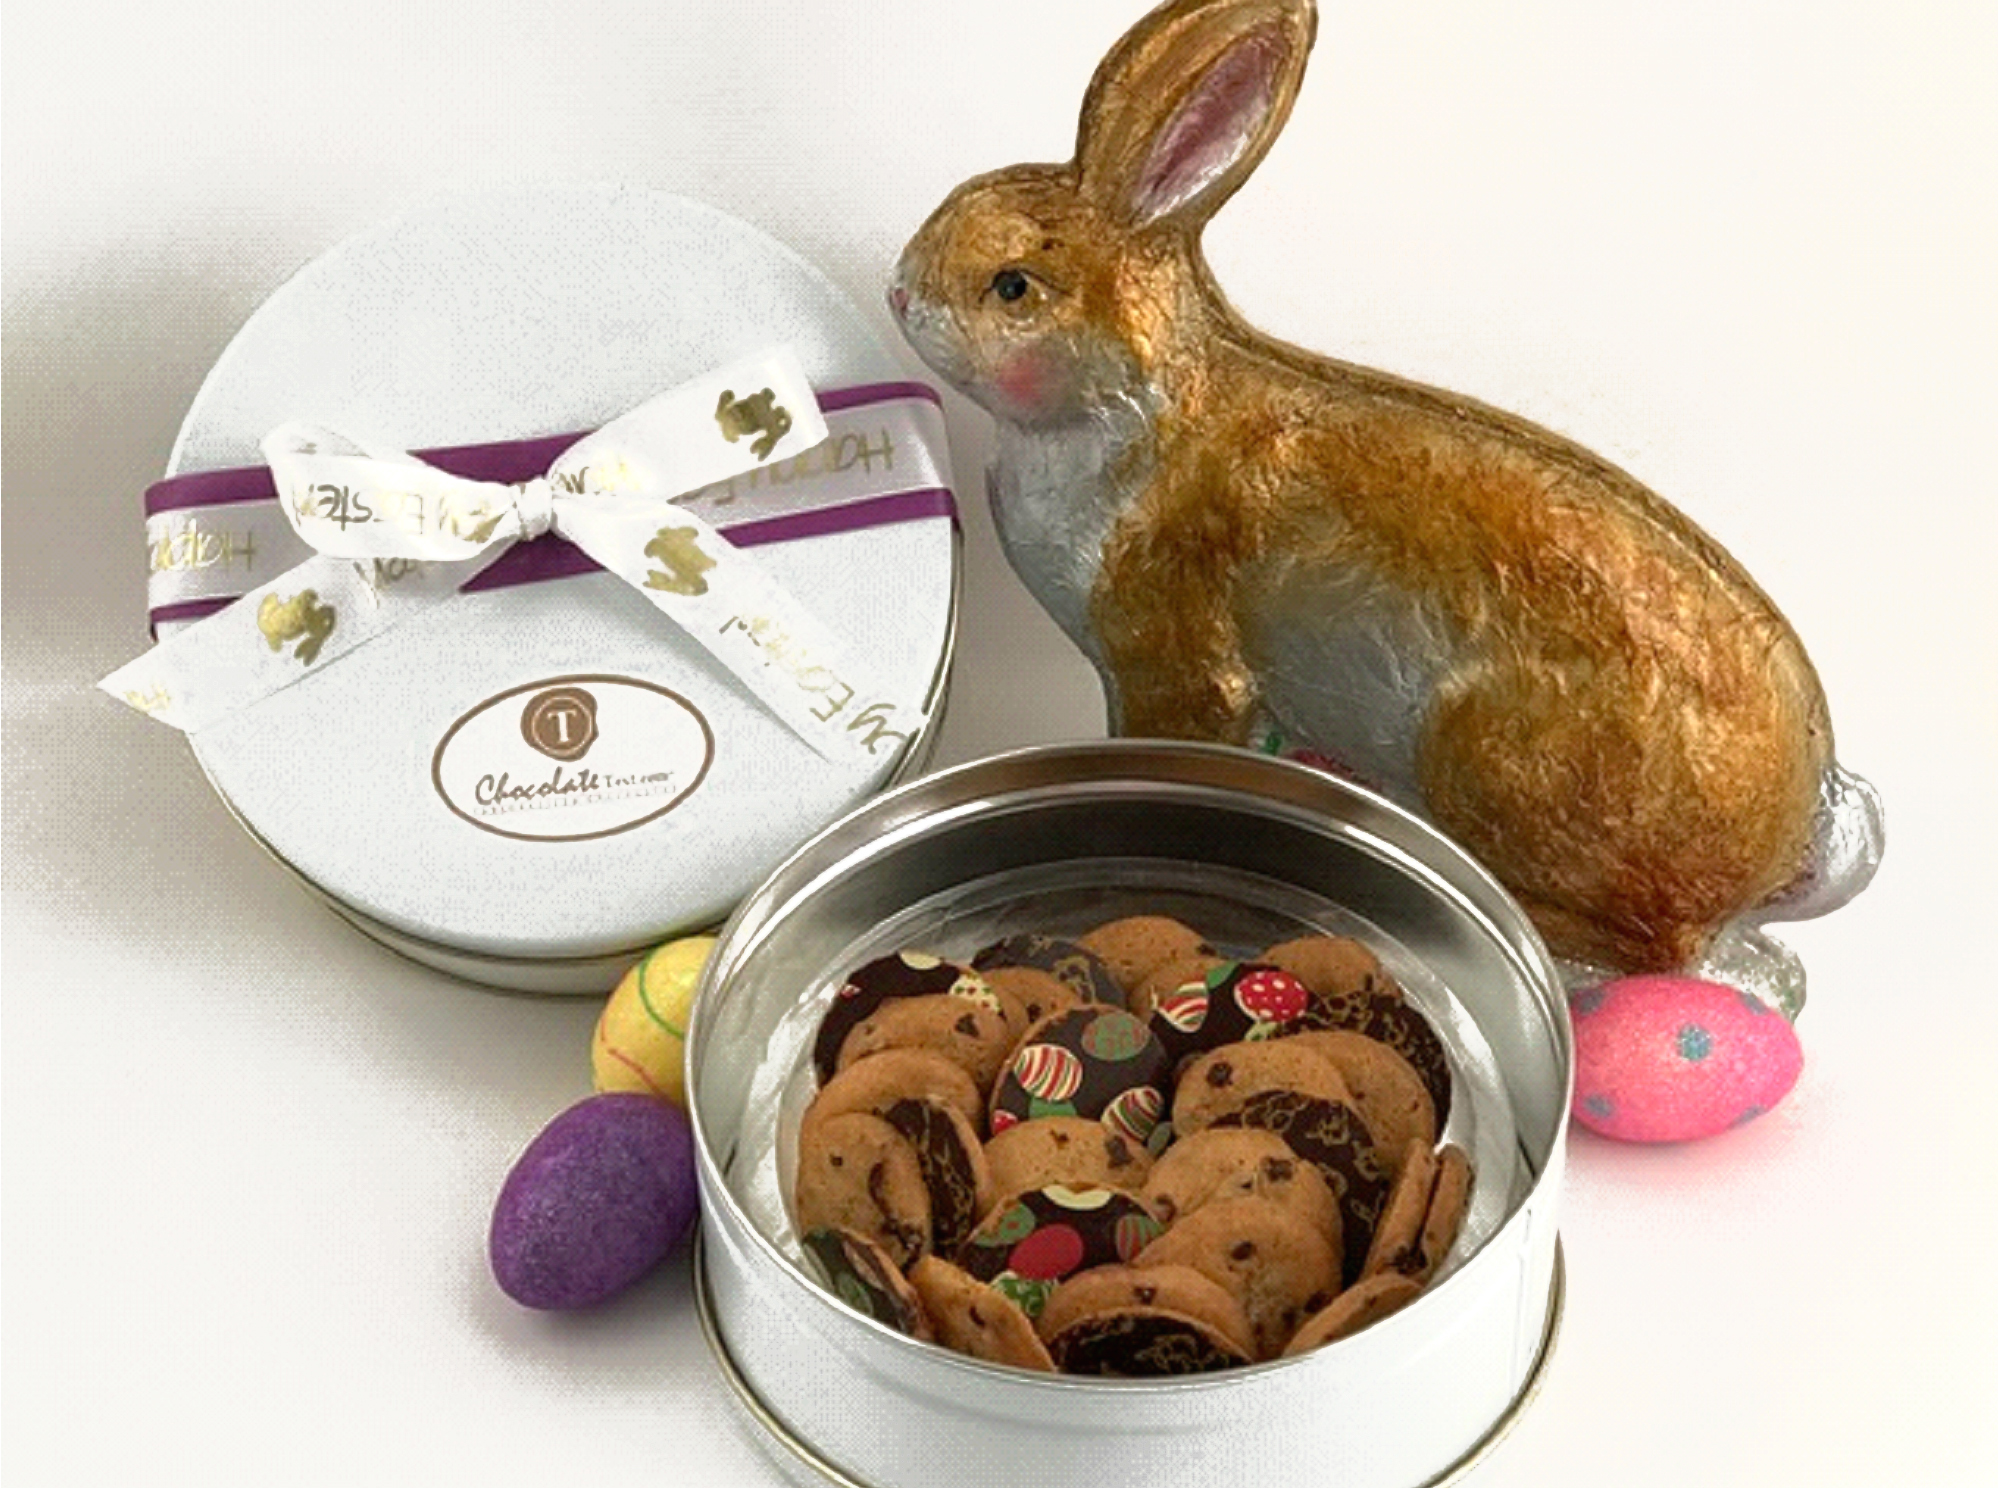 Chocolate Text - Easter Cookies - Chocolate chip cookies, chocolate coated with Easter designs, 32 pcs. in a large gift tin finished with Easter Ribbon